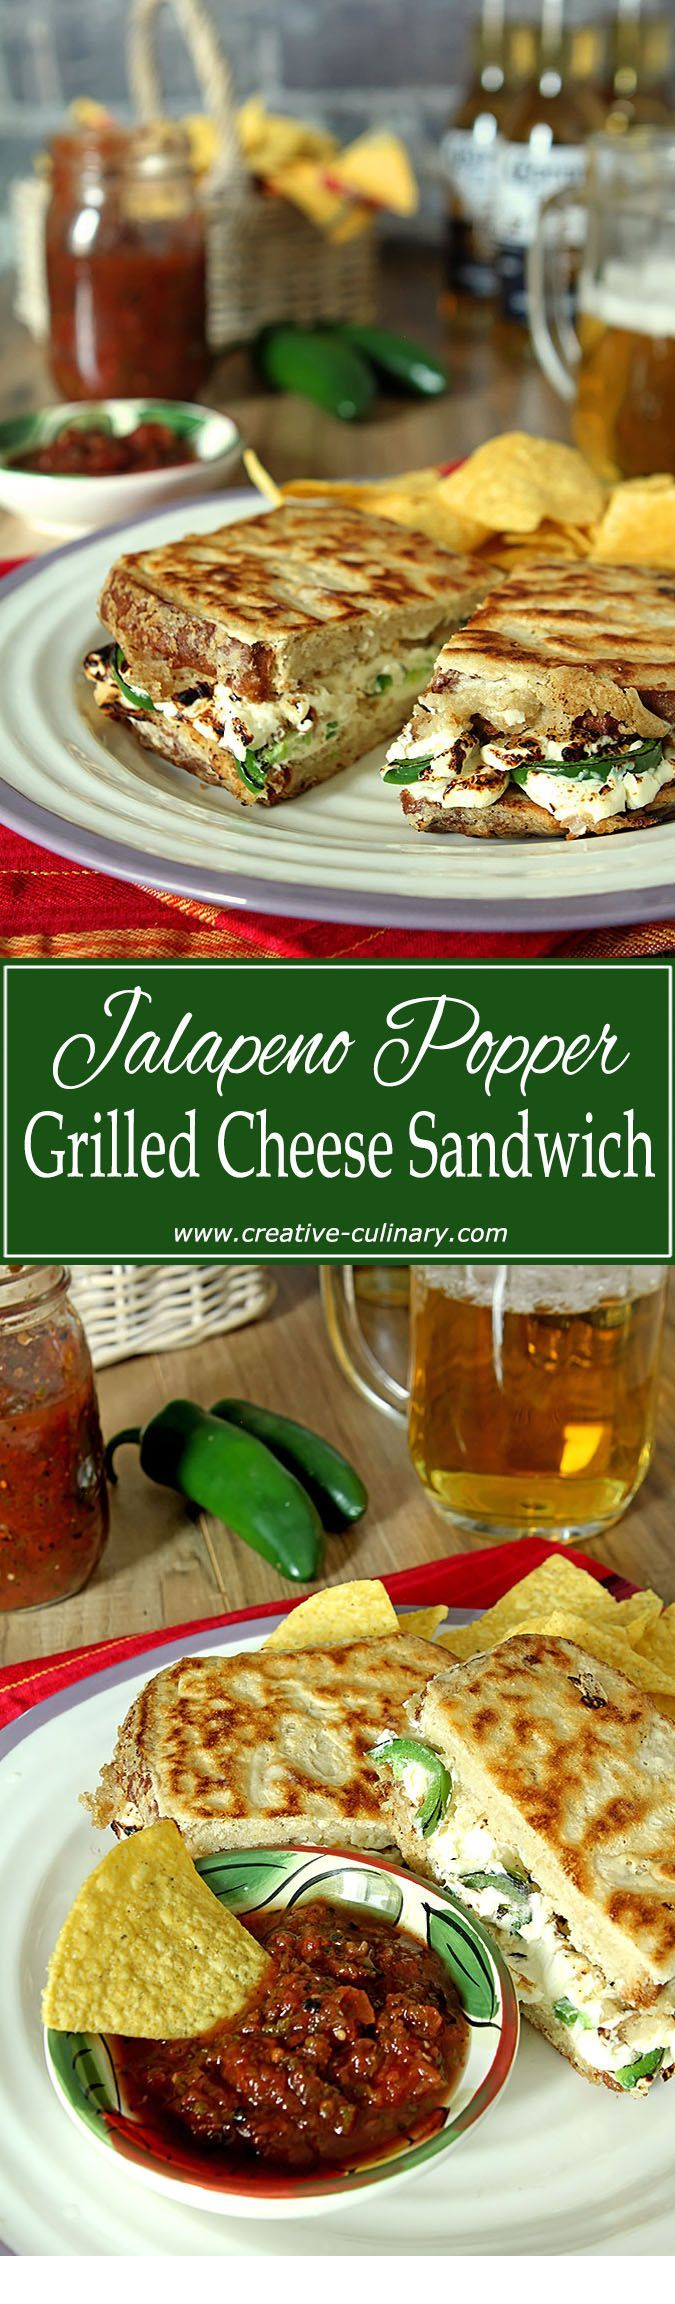 Jalapeño Popper Grilled Cheese Sandwich with Beer Battered Crust via @creativculinary